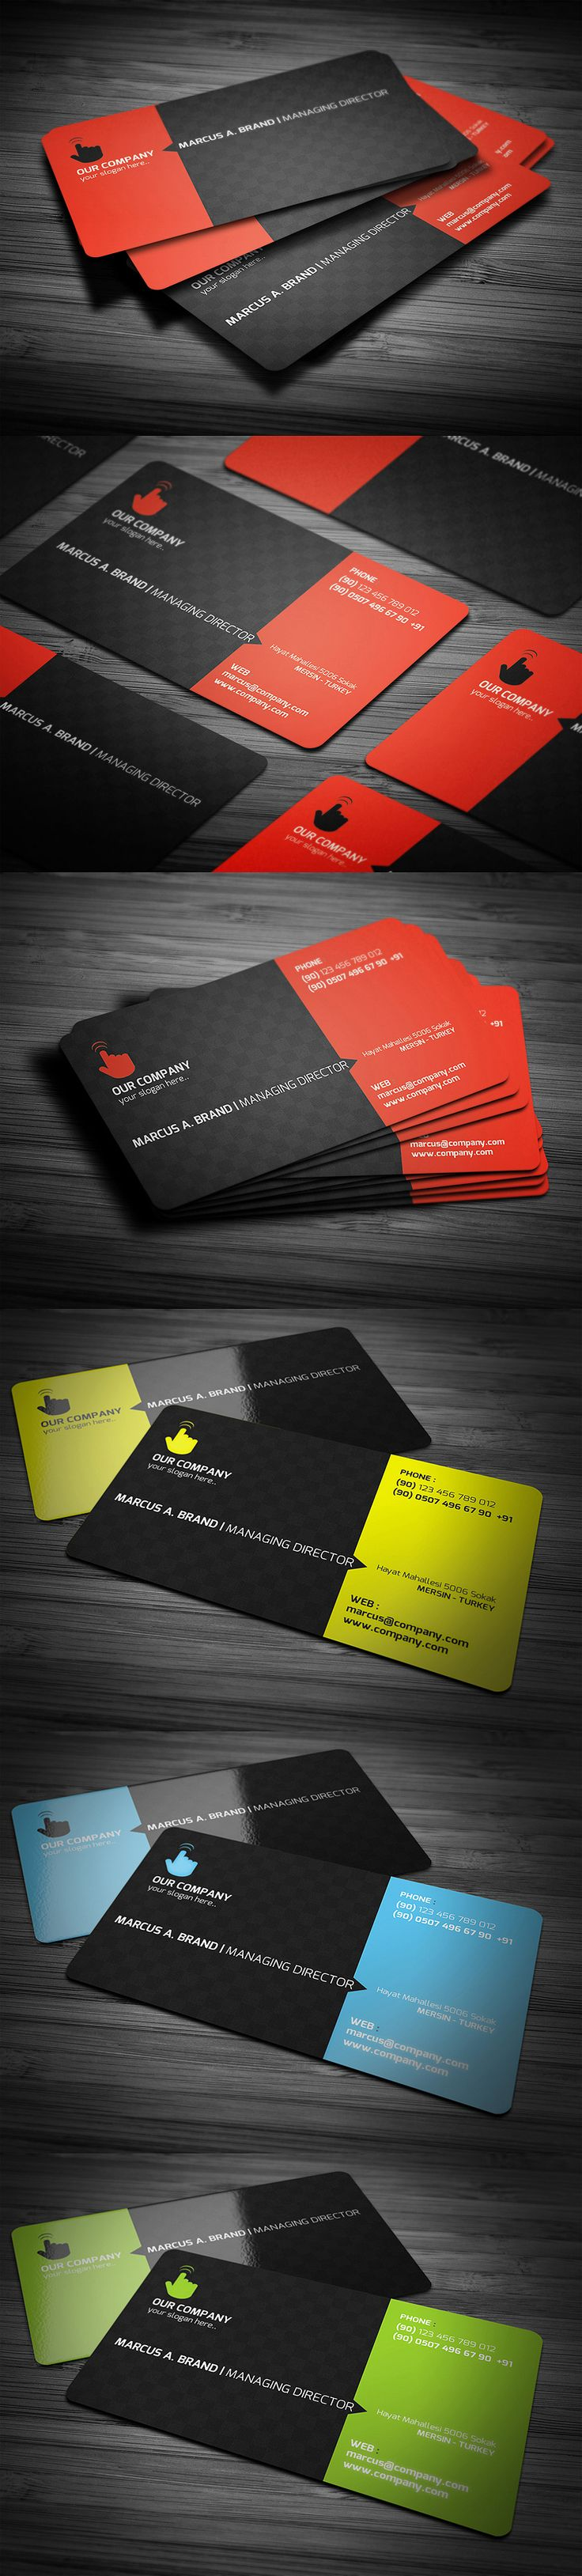 22 Best Business Card Ideas Cases Images On Pinterest Business